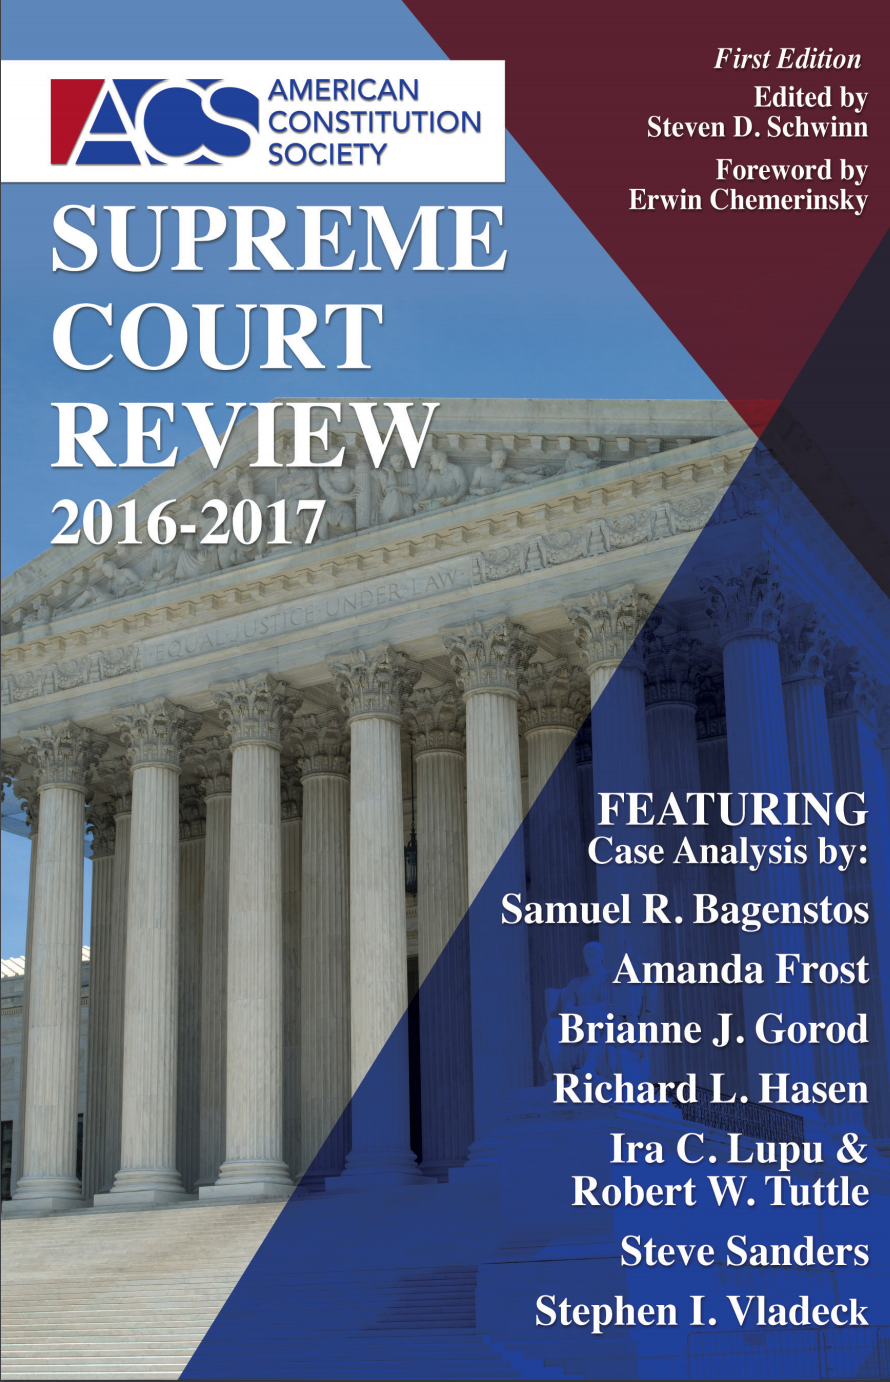 ACS supreme court review